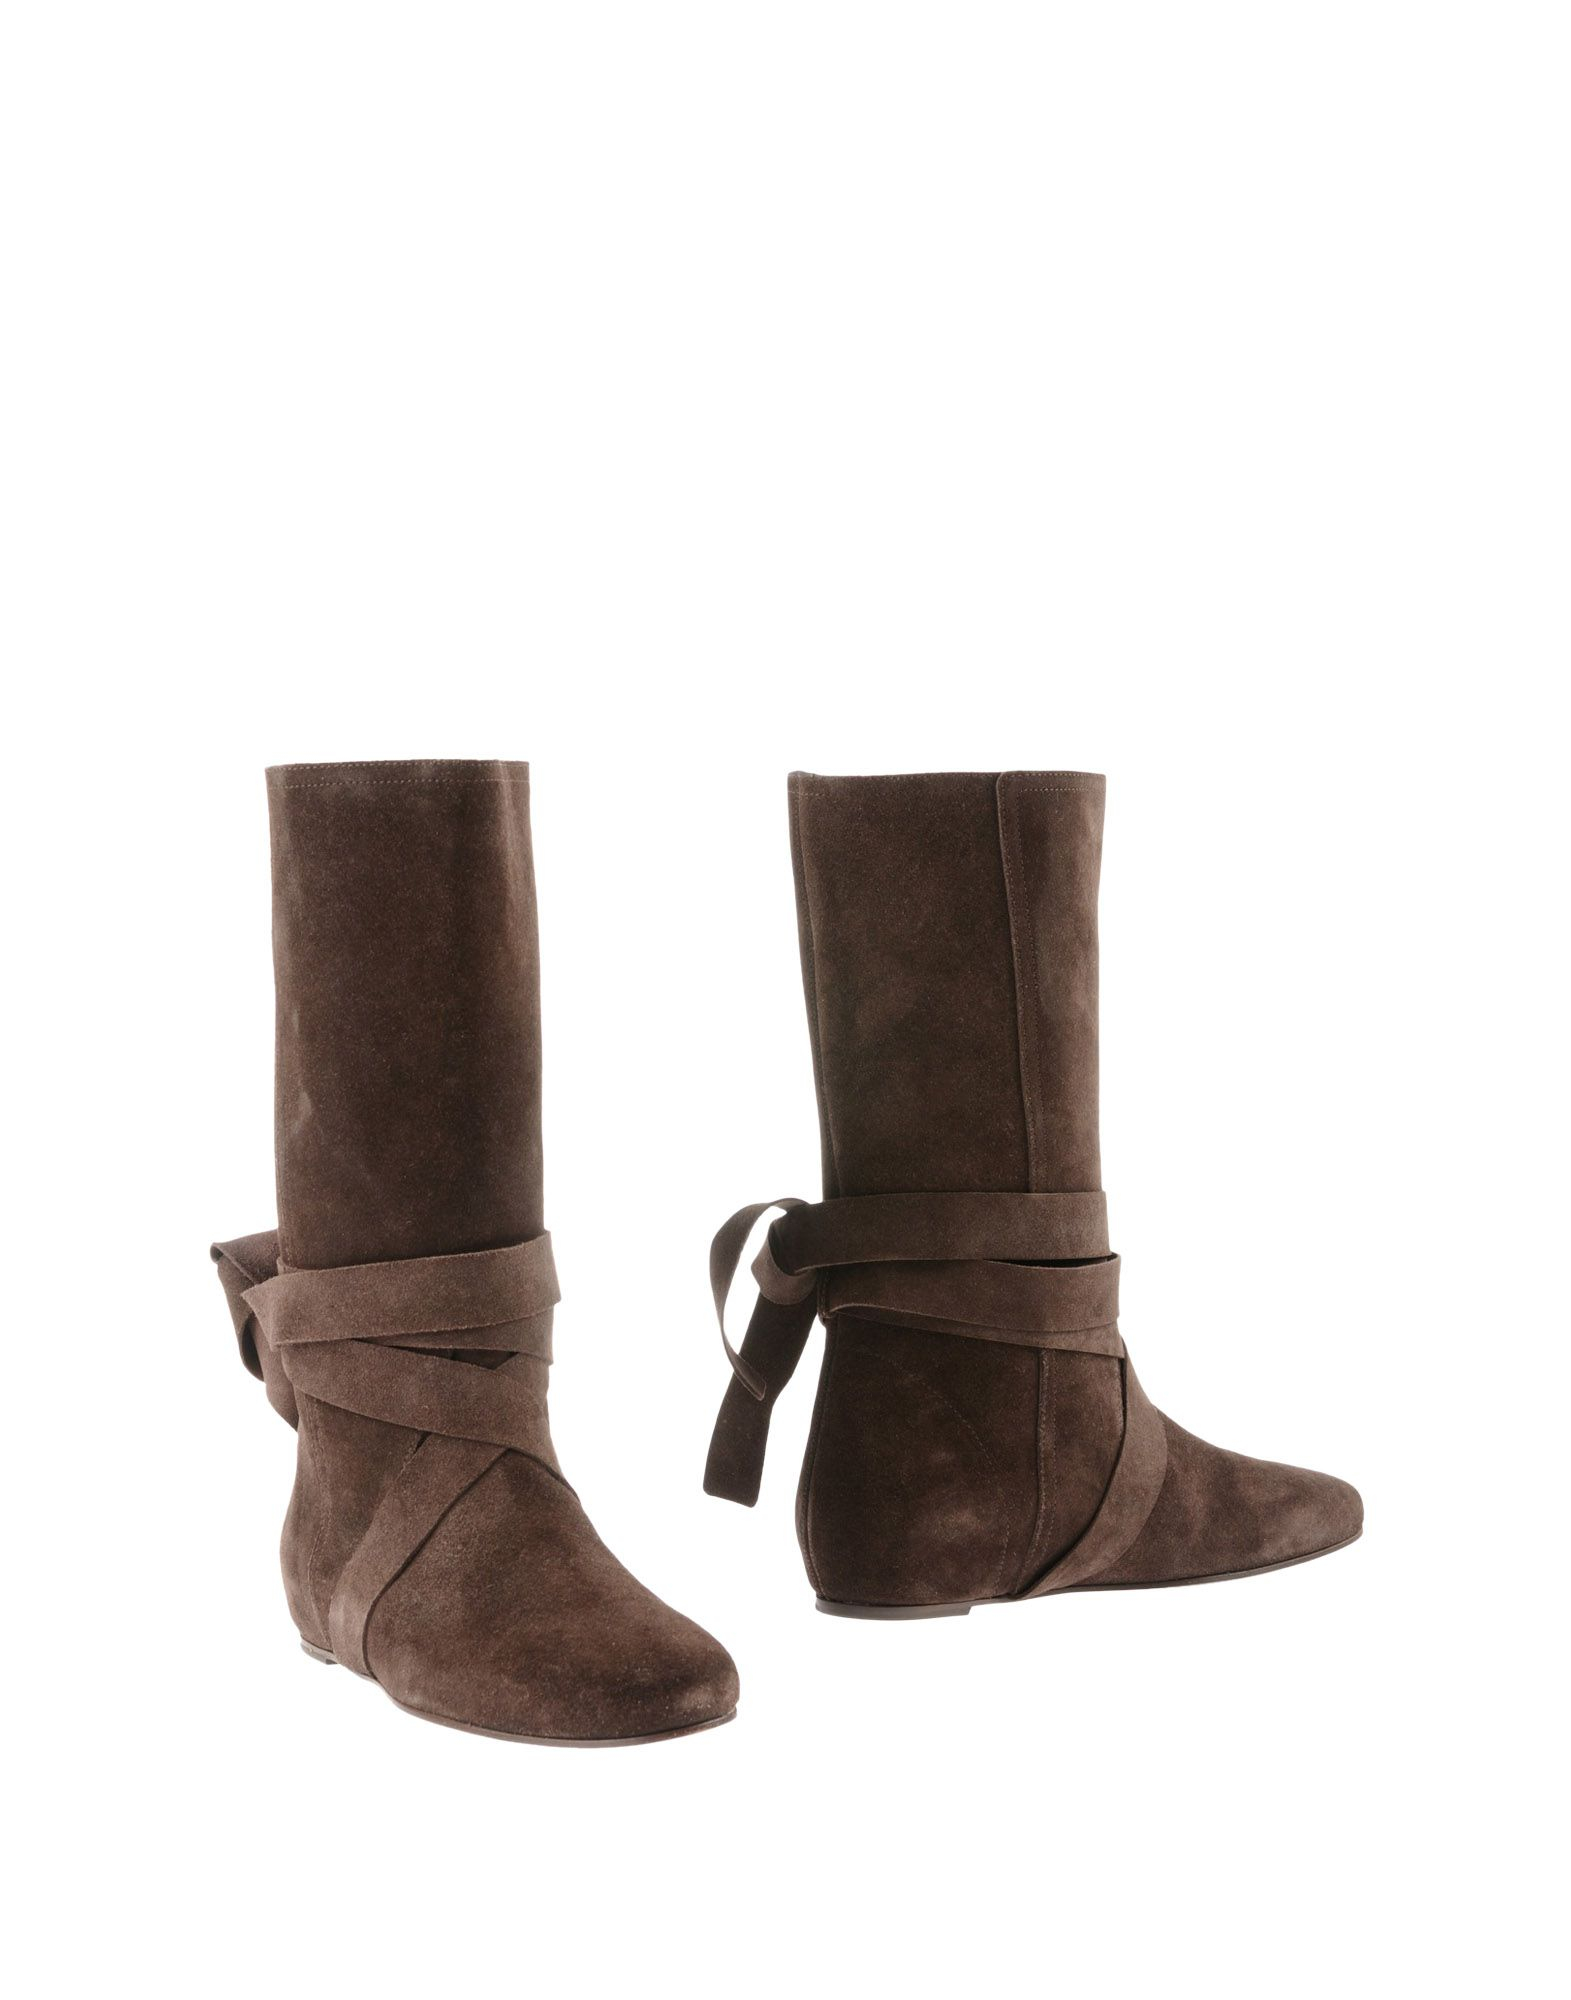 michael kors boots in brown lyst